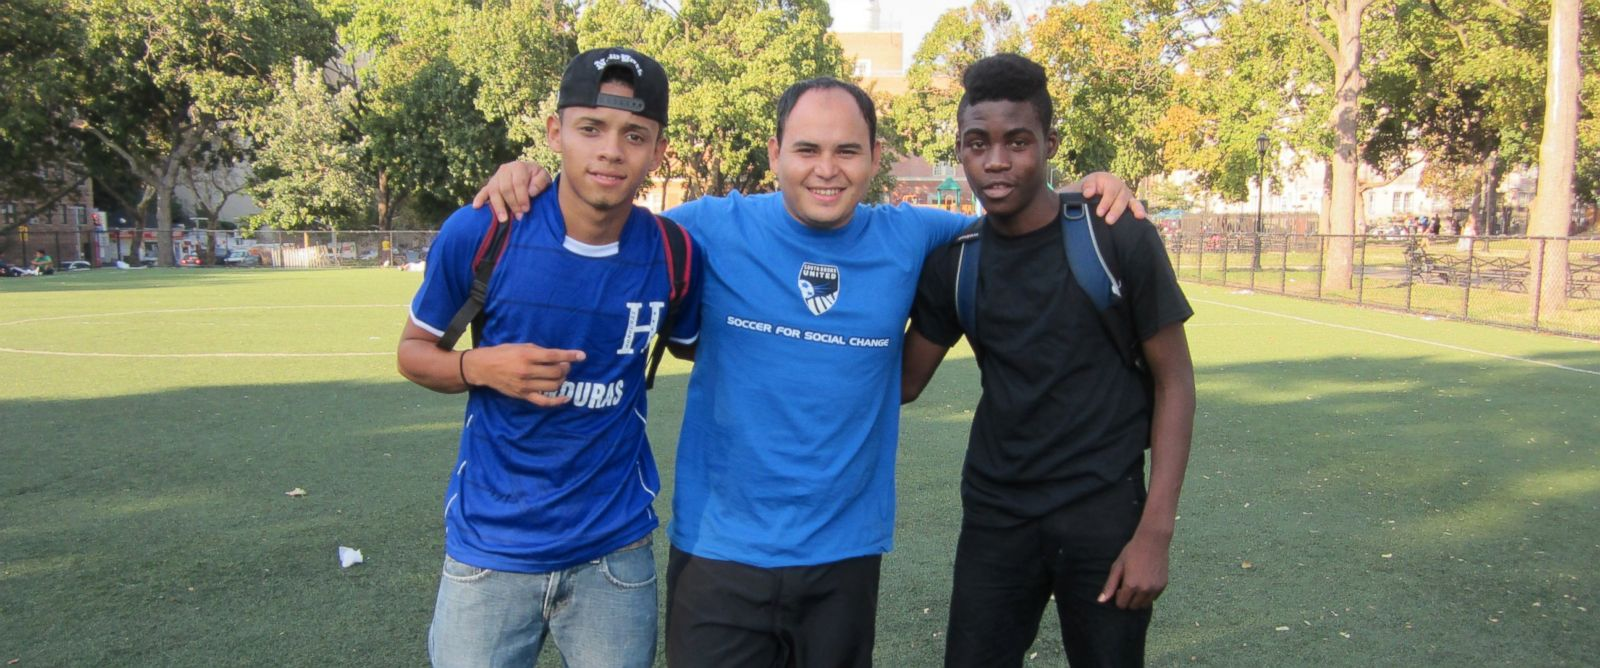 PHOTO: Norlan Girón (left), Elvis García (ctr) and Carlos Martínez at Mullay Park in South Bronx.